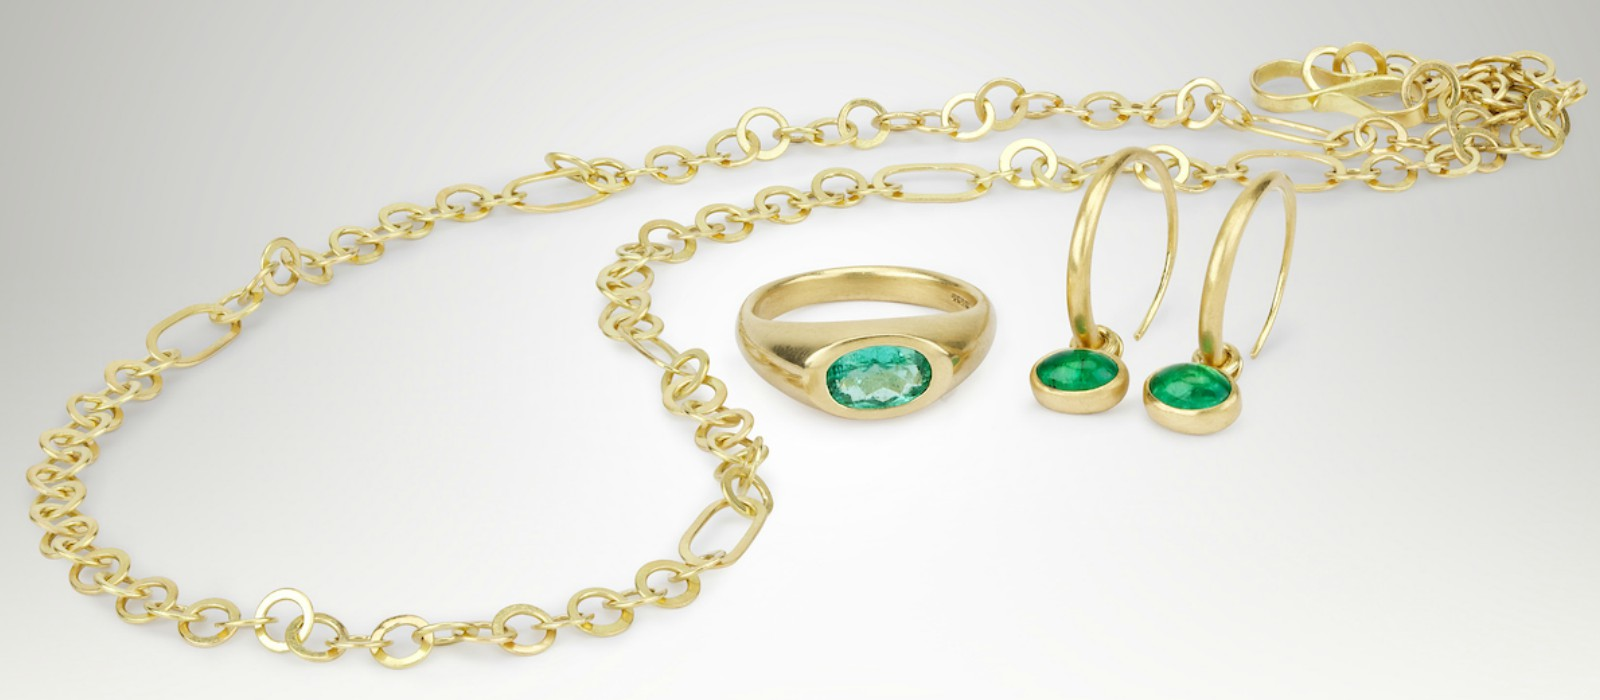 Abby Mosseri gold and emerald engagement ring, wedding jewellery image